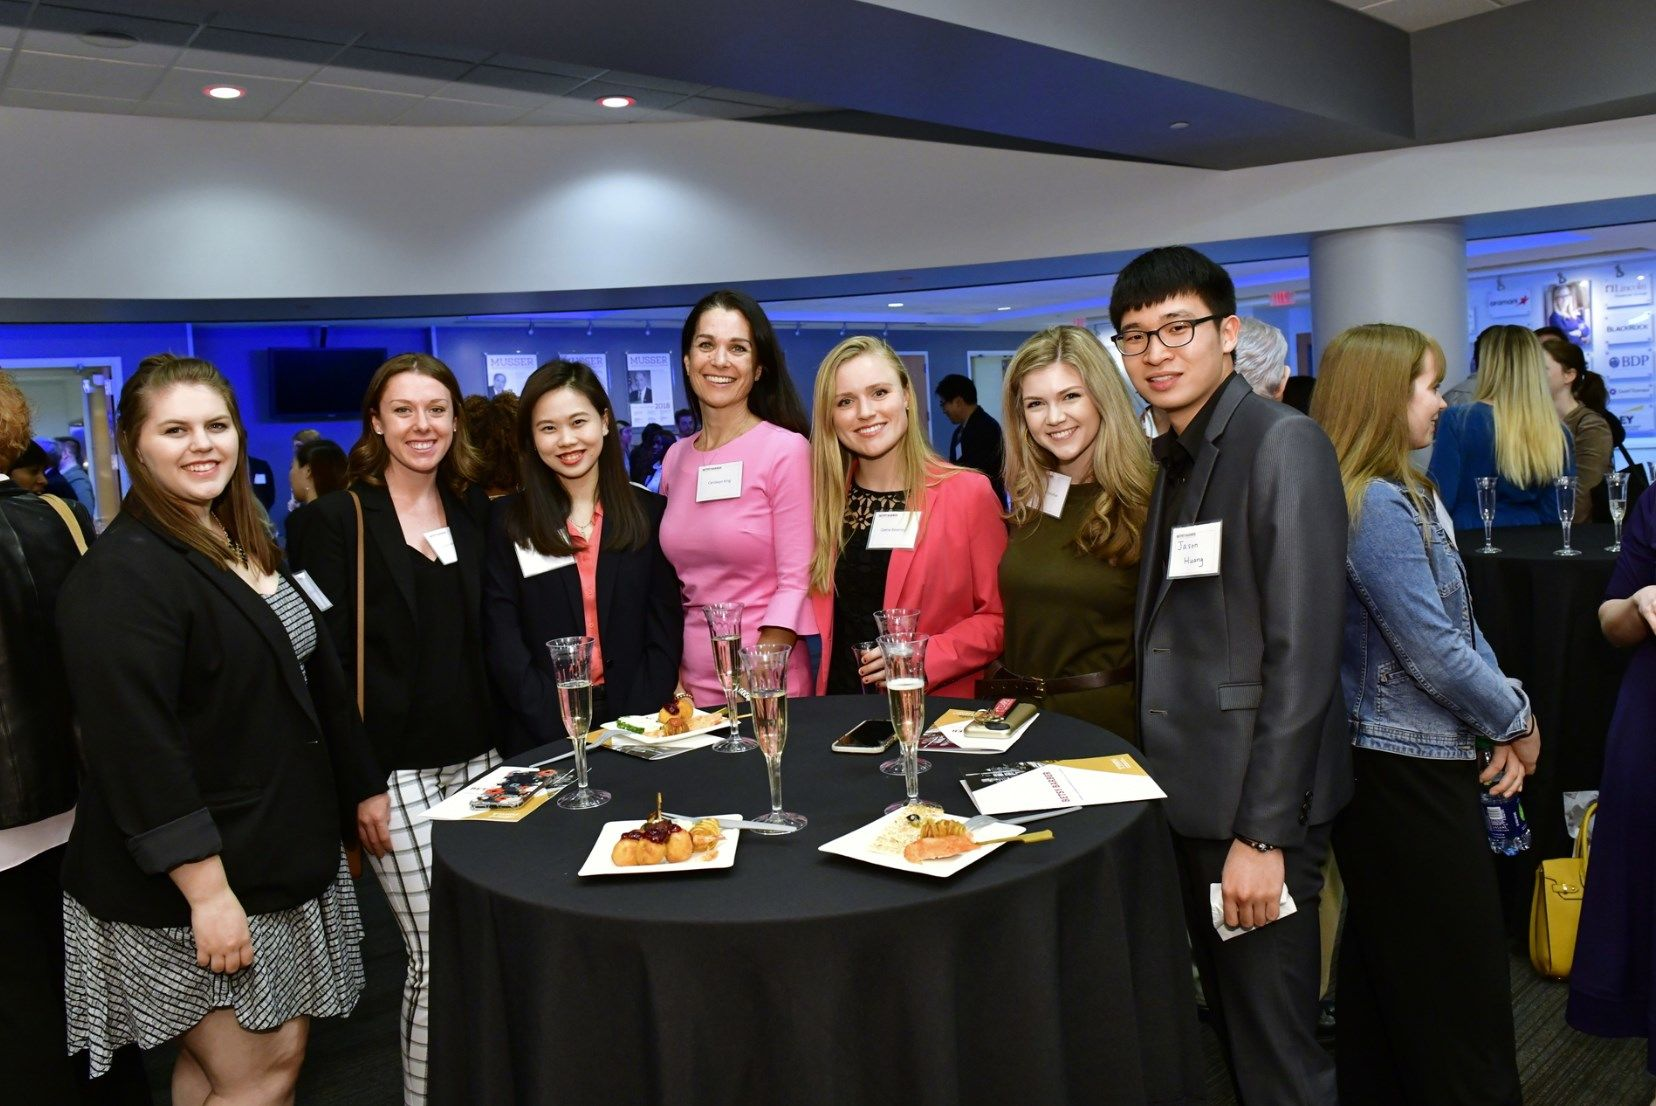 An event at the School of Sport, Tourism and Hospitality Management.